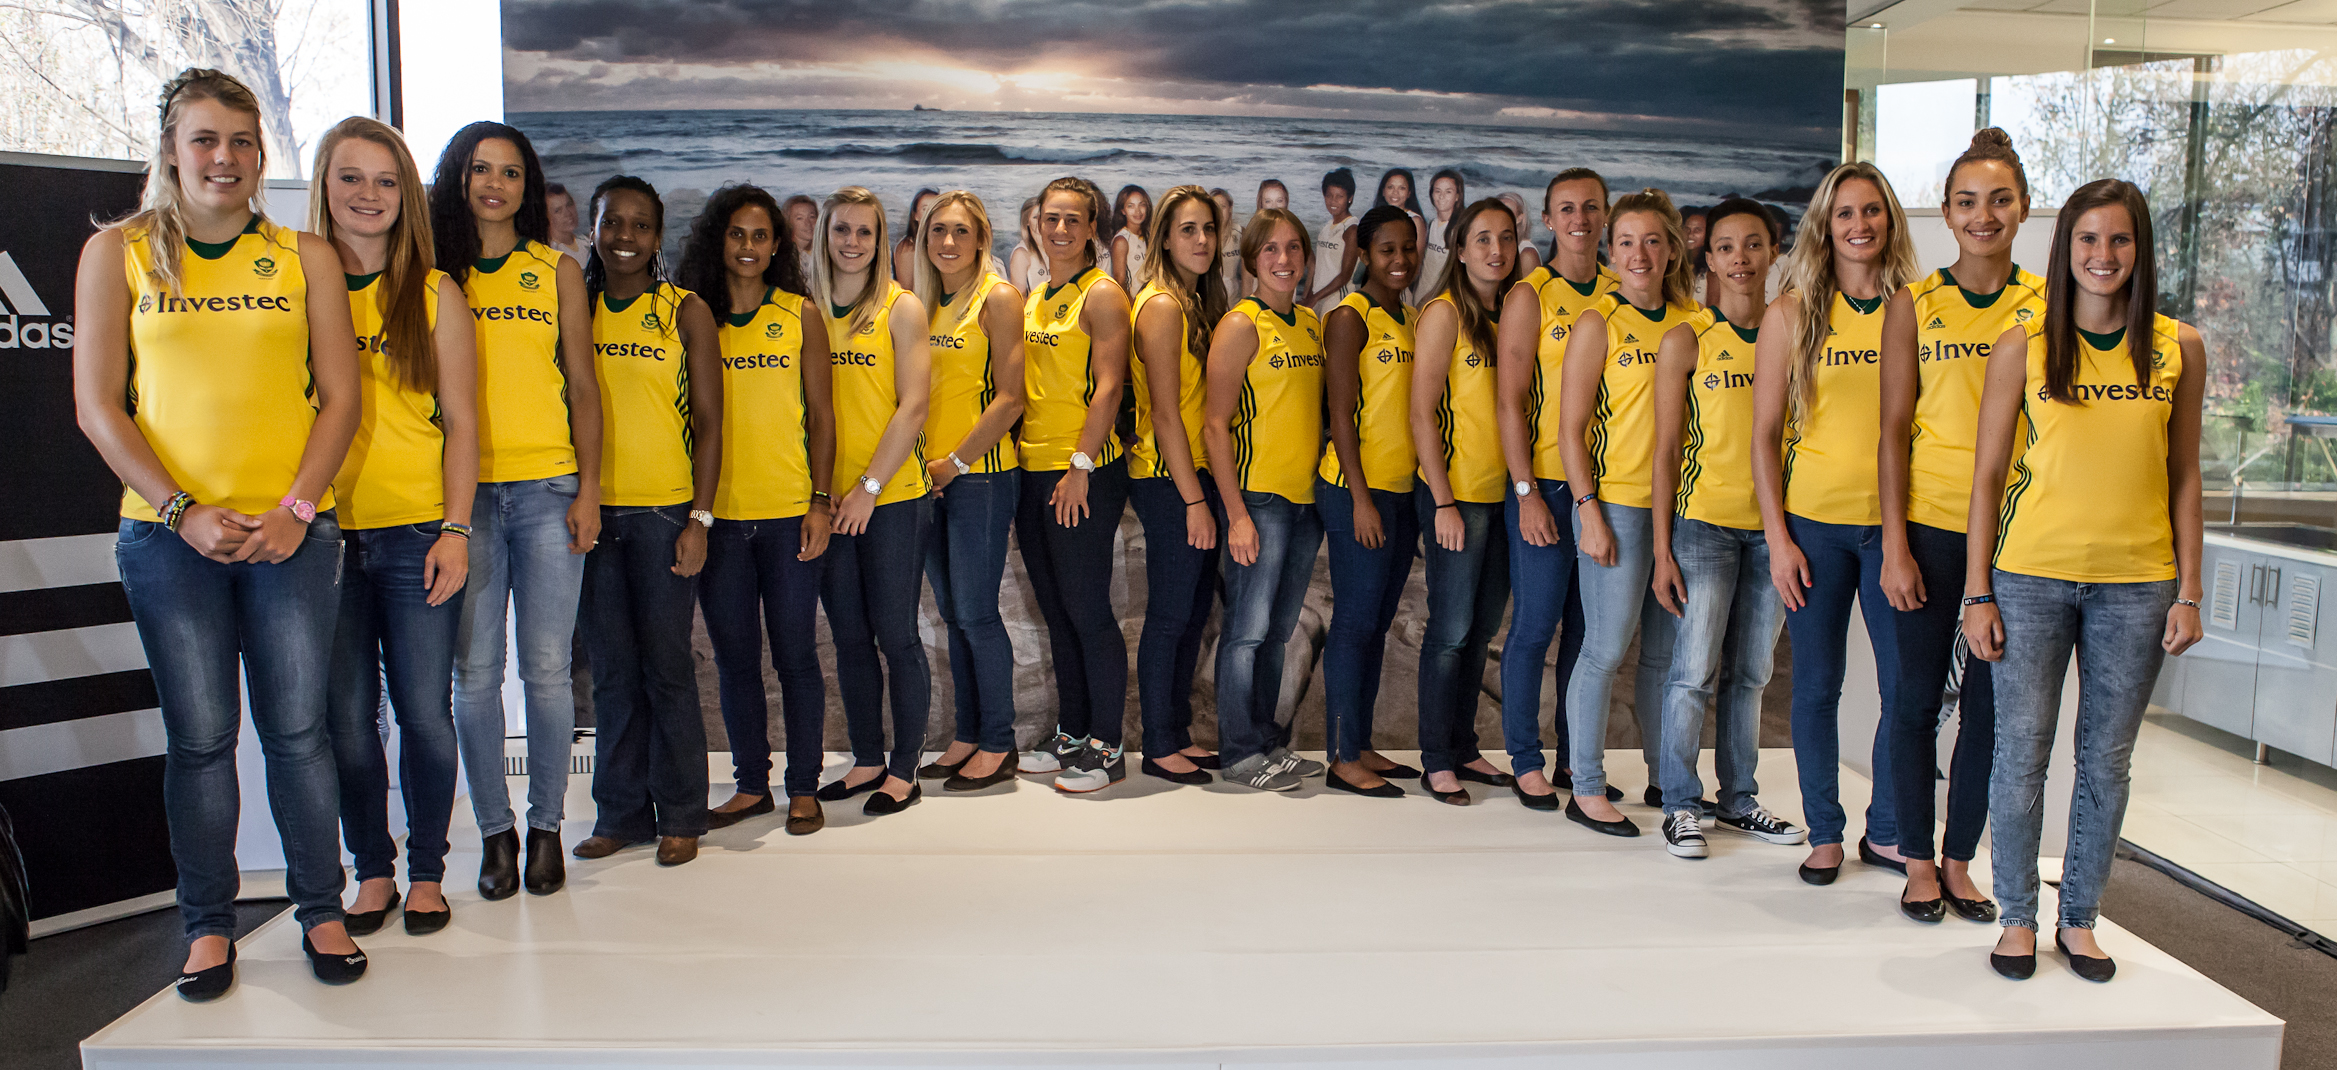 South Africa women's hockey team at Investec Bank in Johannesburg (c) Charles Johnstone